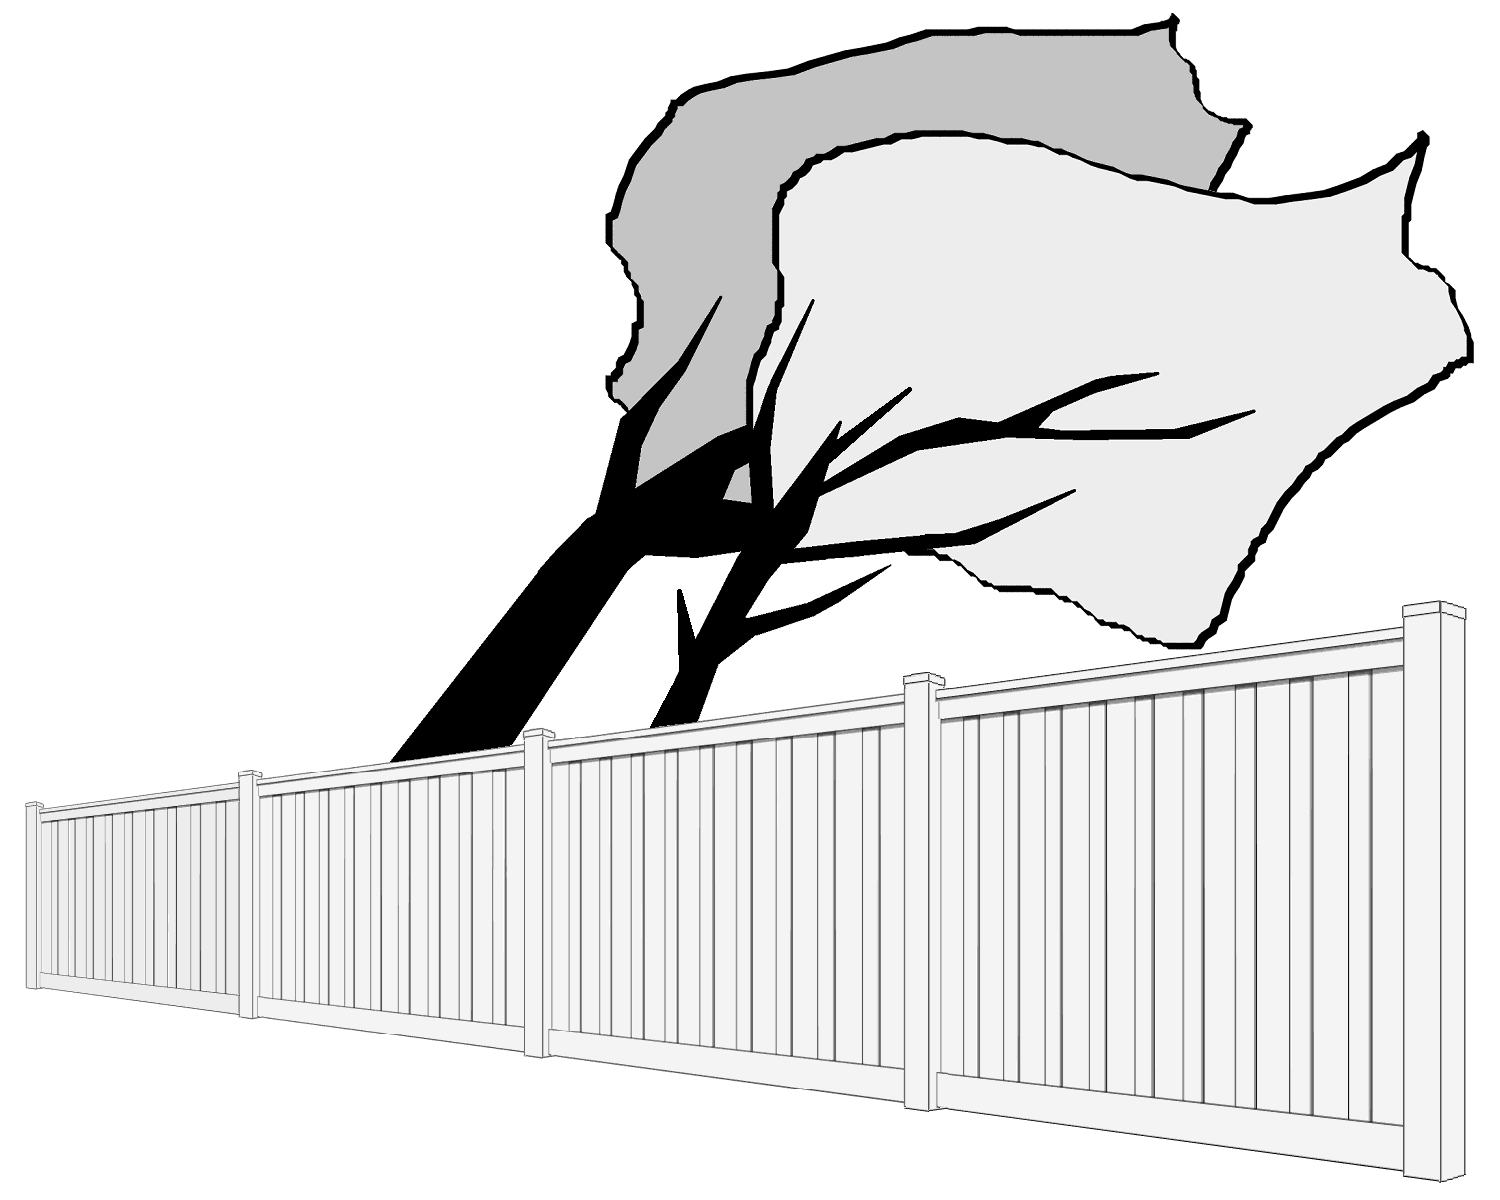 Clip art image of a Trex Fence standing up to high winds while trees are being blown hard behind the fence.